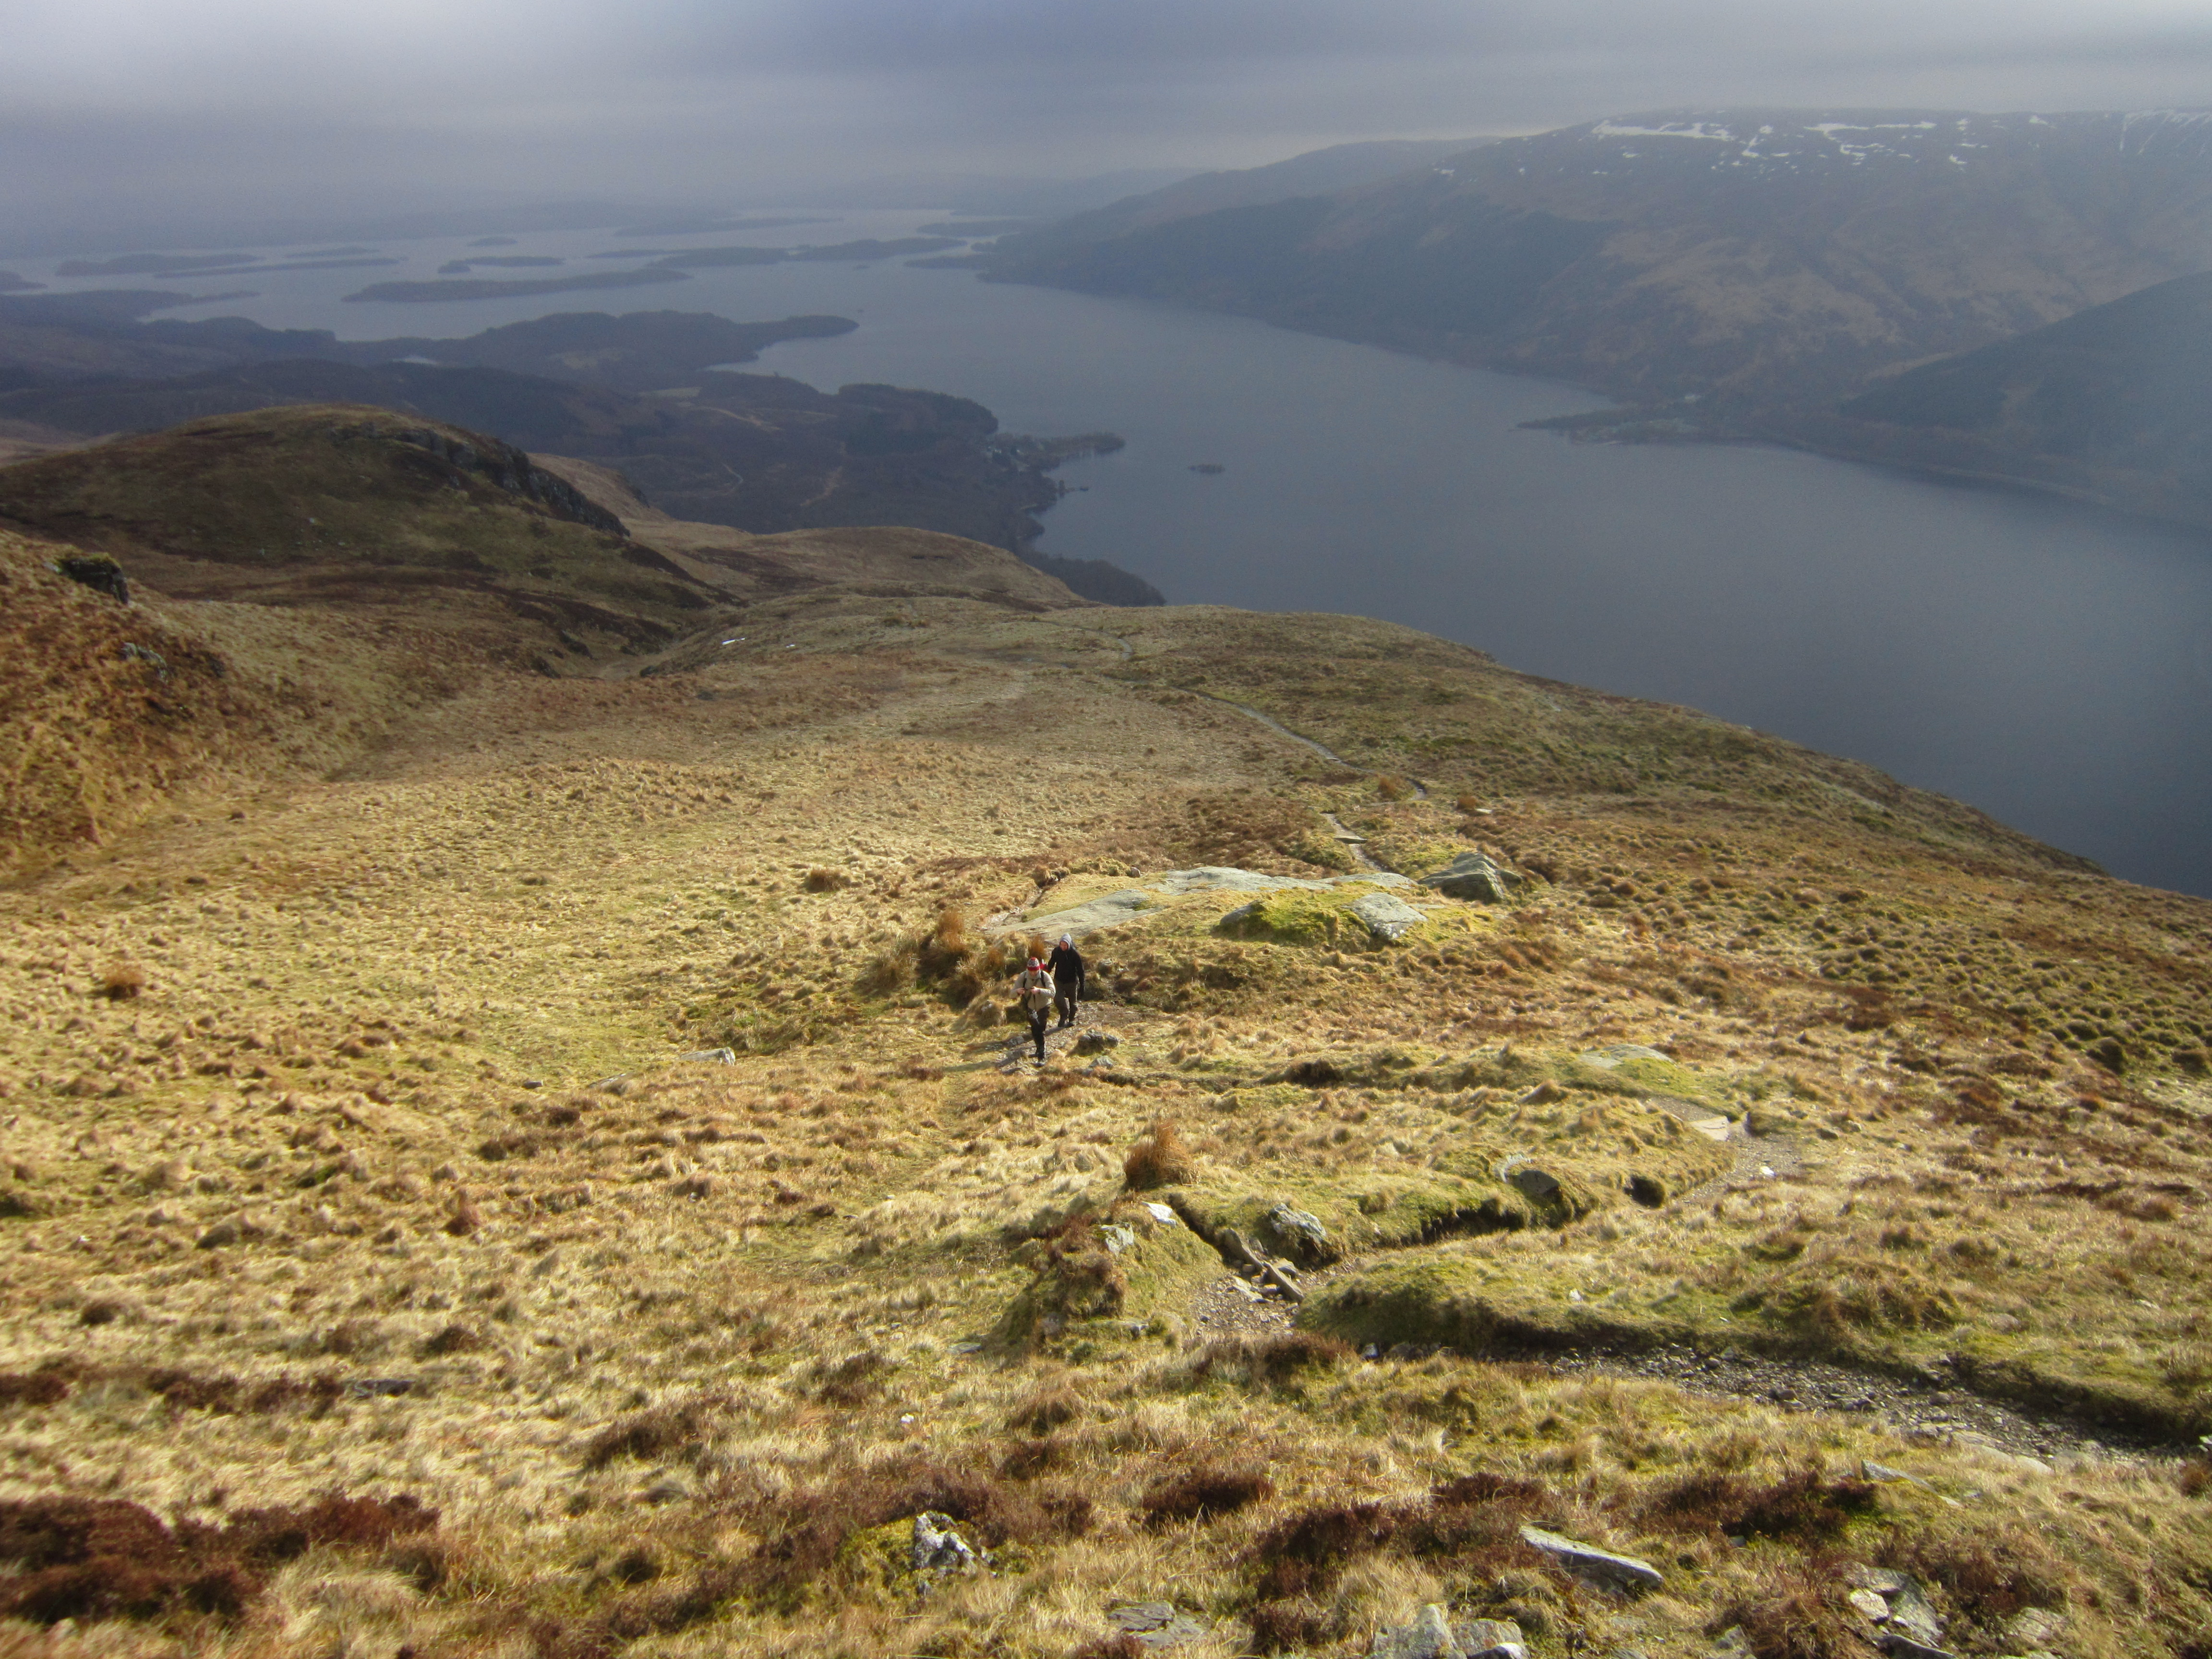 Looking back at Vas and Ben as we walk up Ben Lomond.